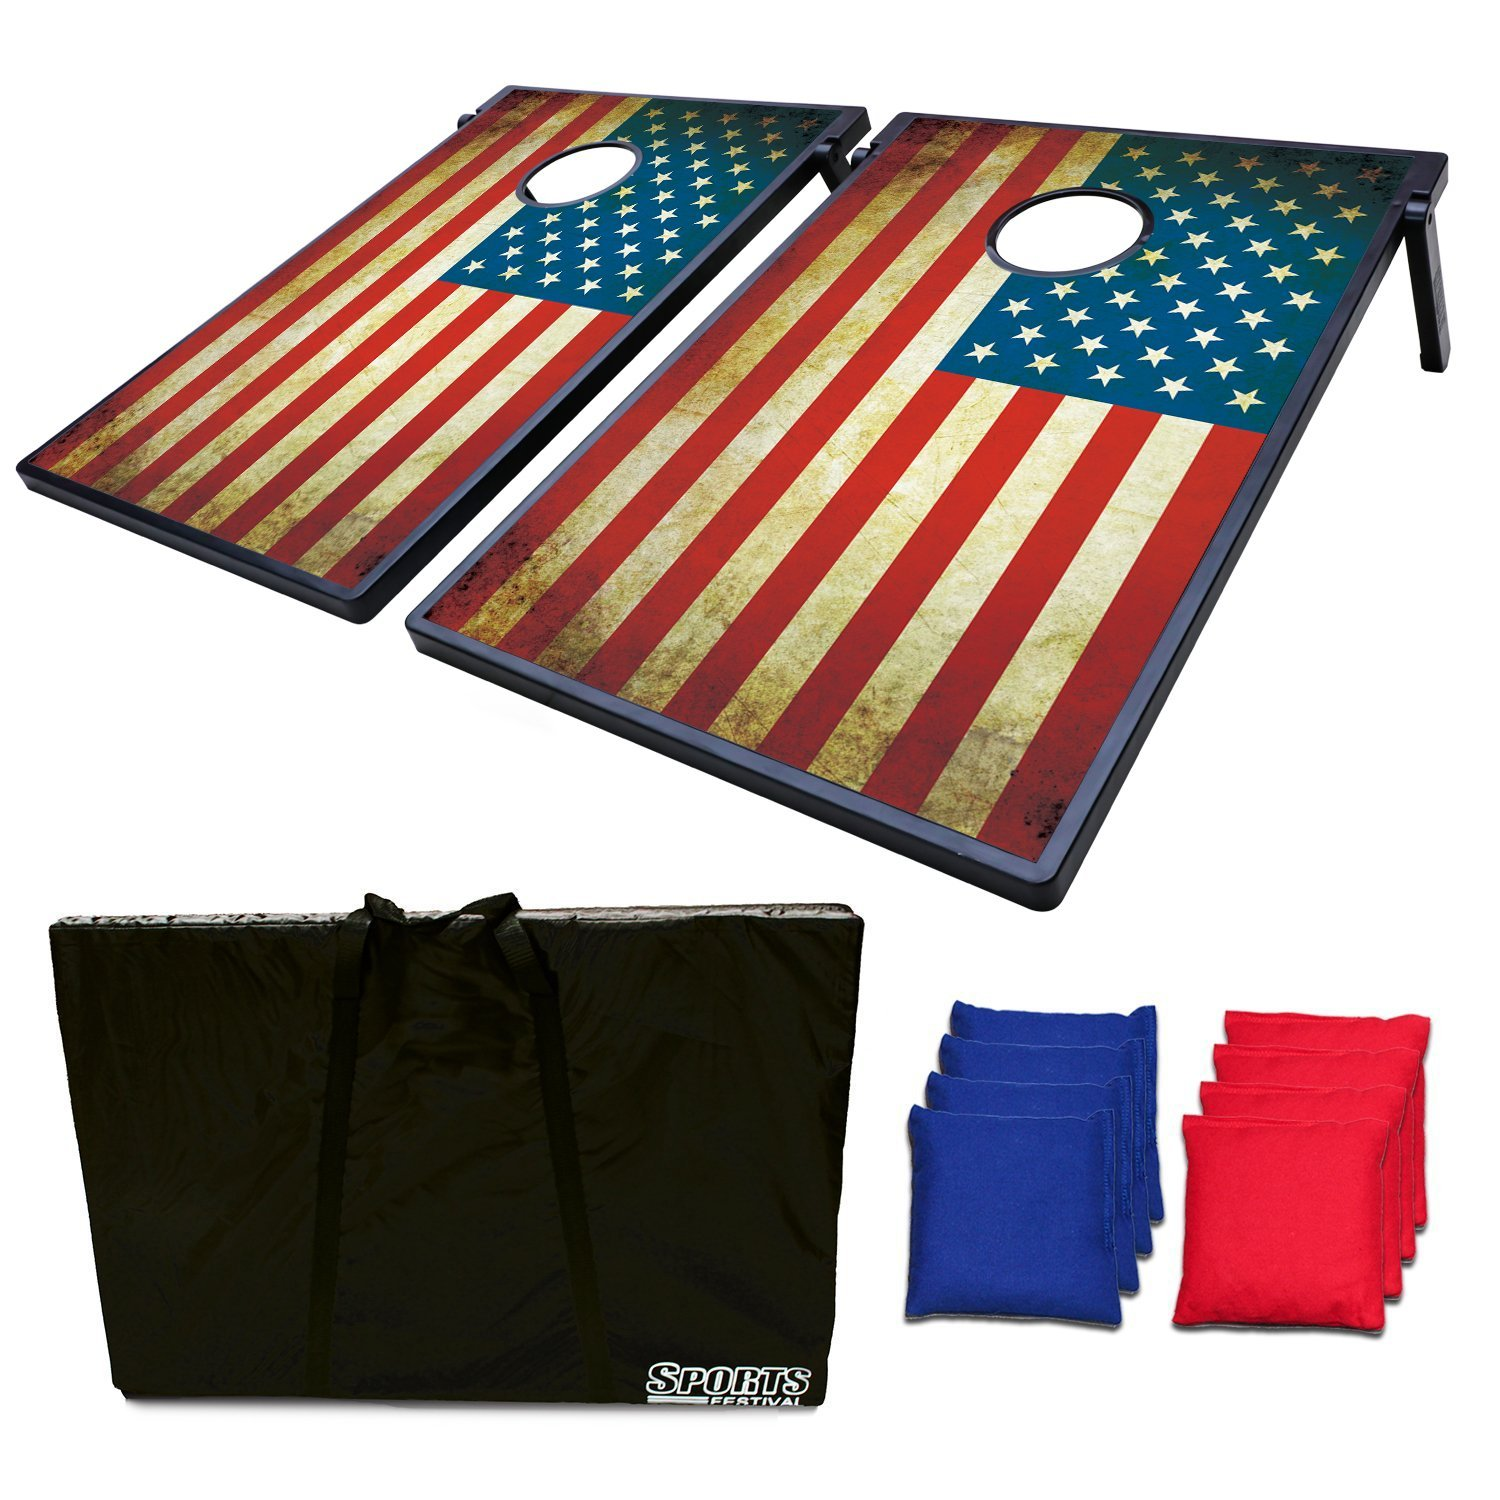 2-in-1 Cornhole Beanbag Toss Game and Tic Tac Toe Antique US Flag by Phelps Group